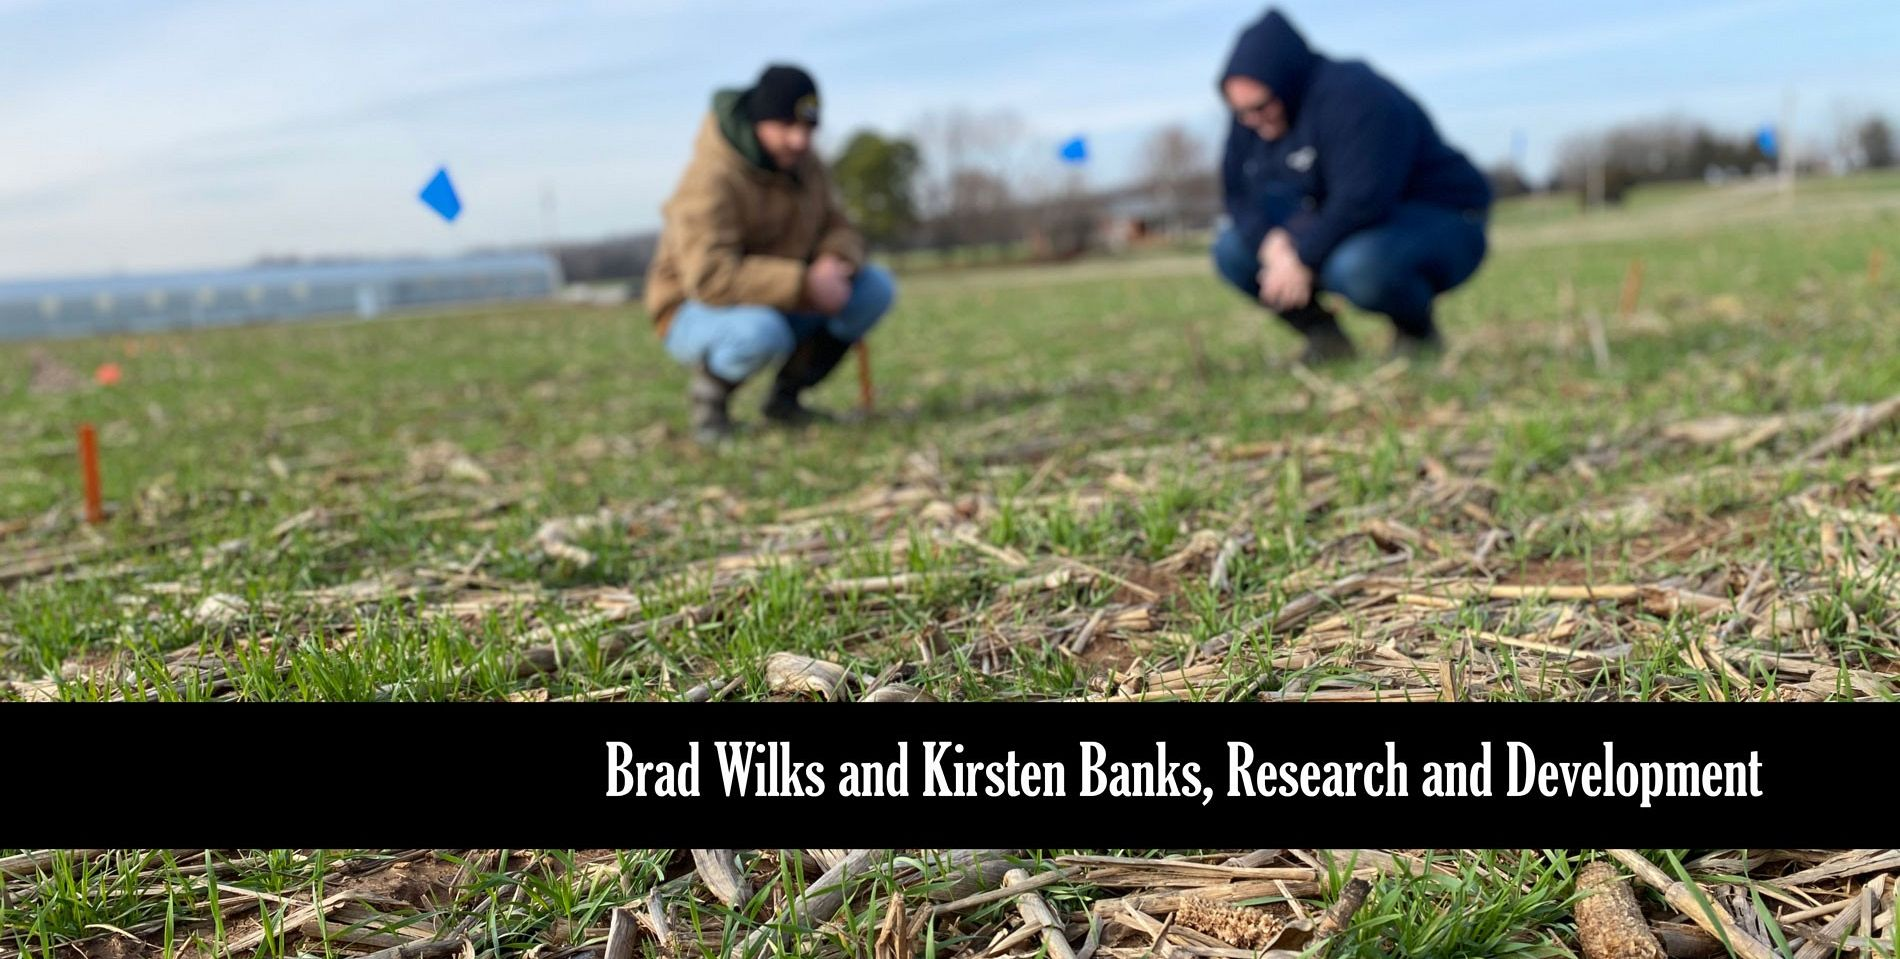 Brad-and-Kirsten,-Research-and-Development